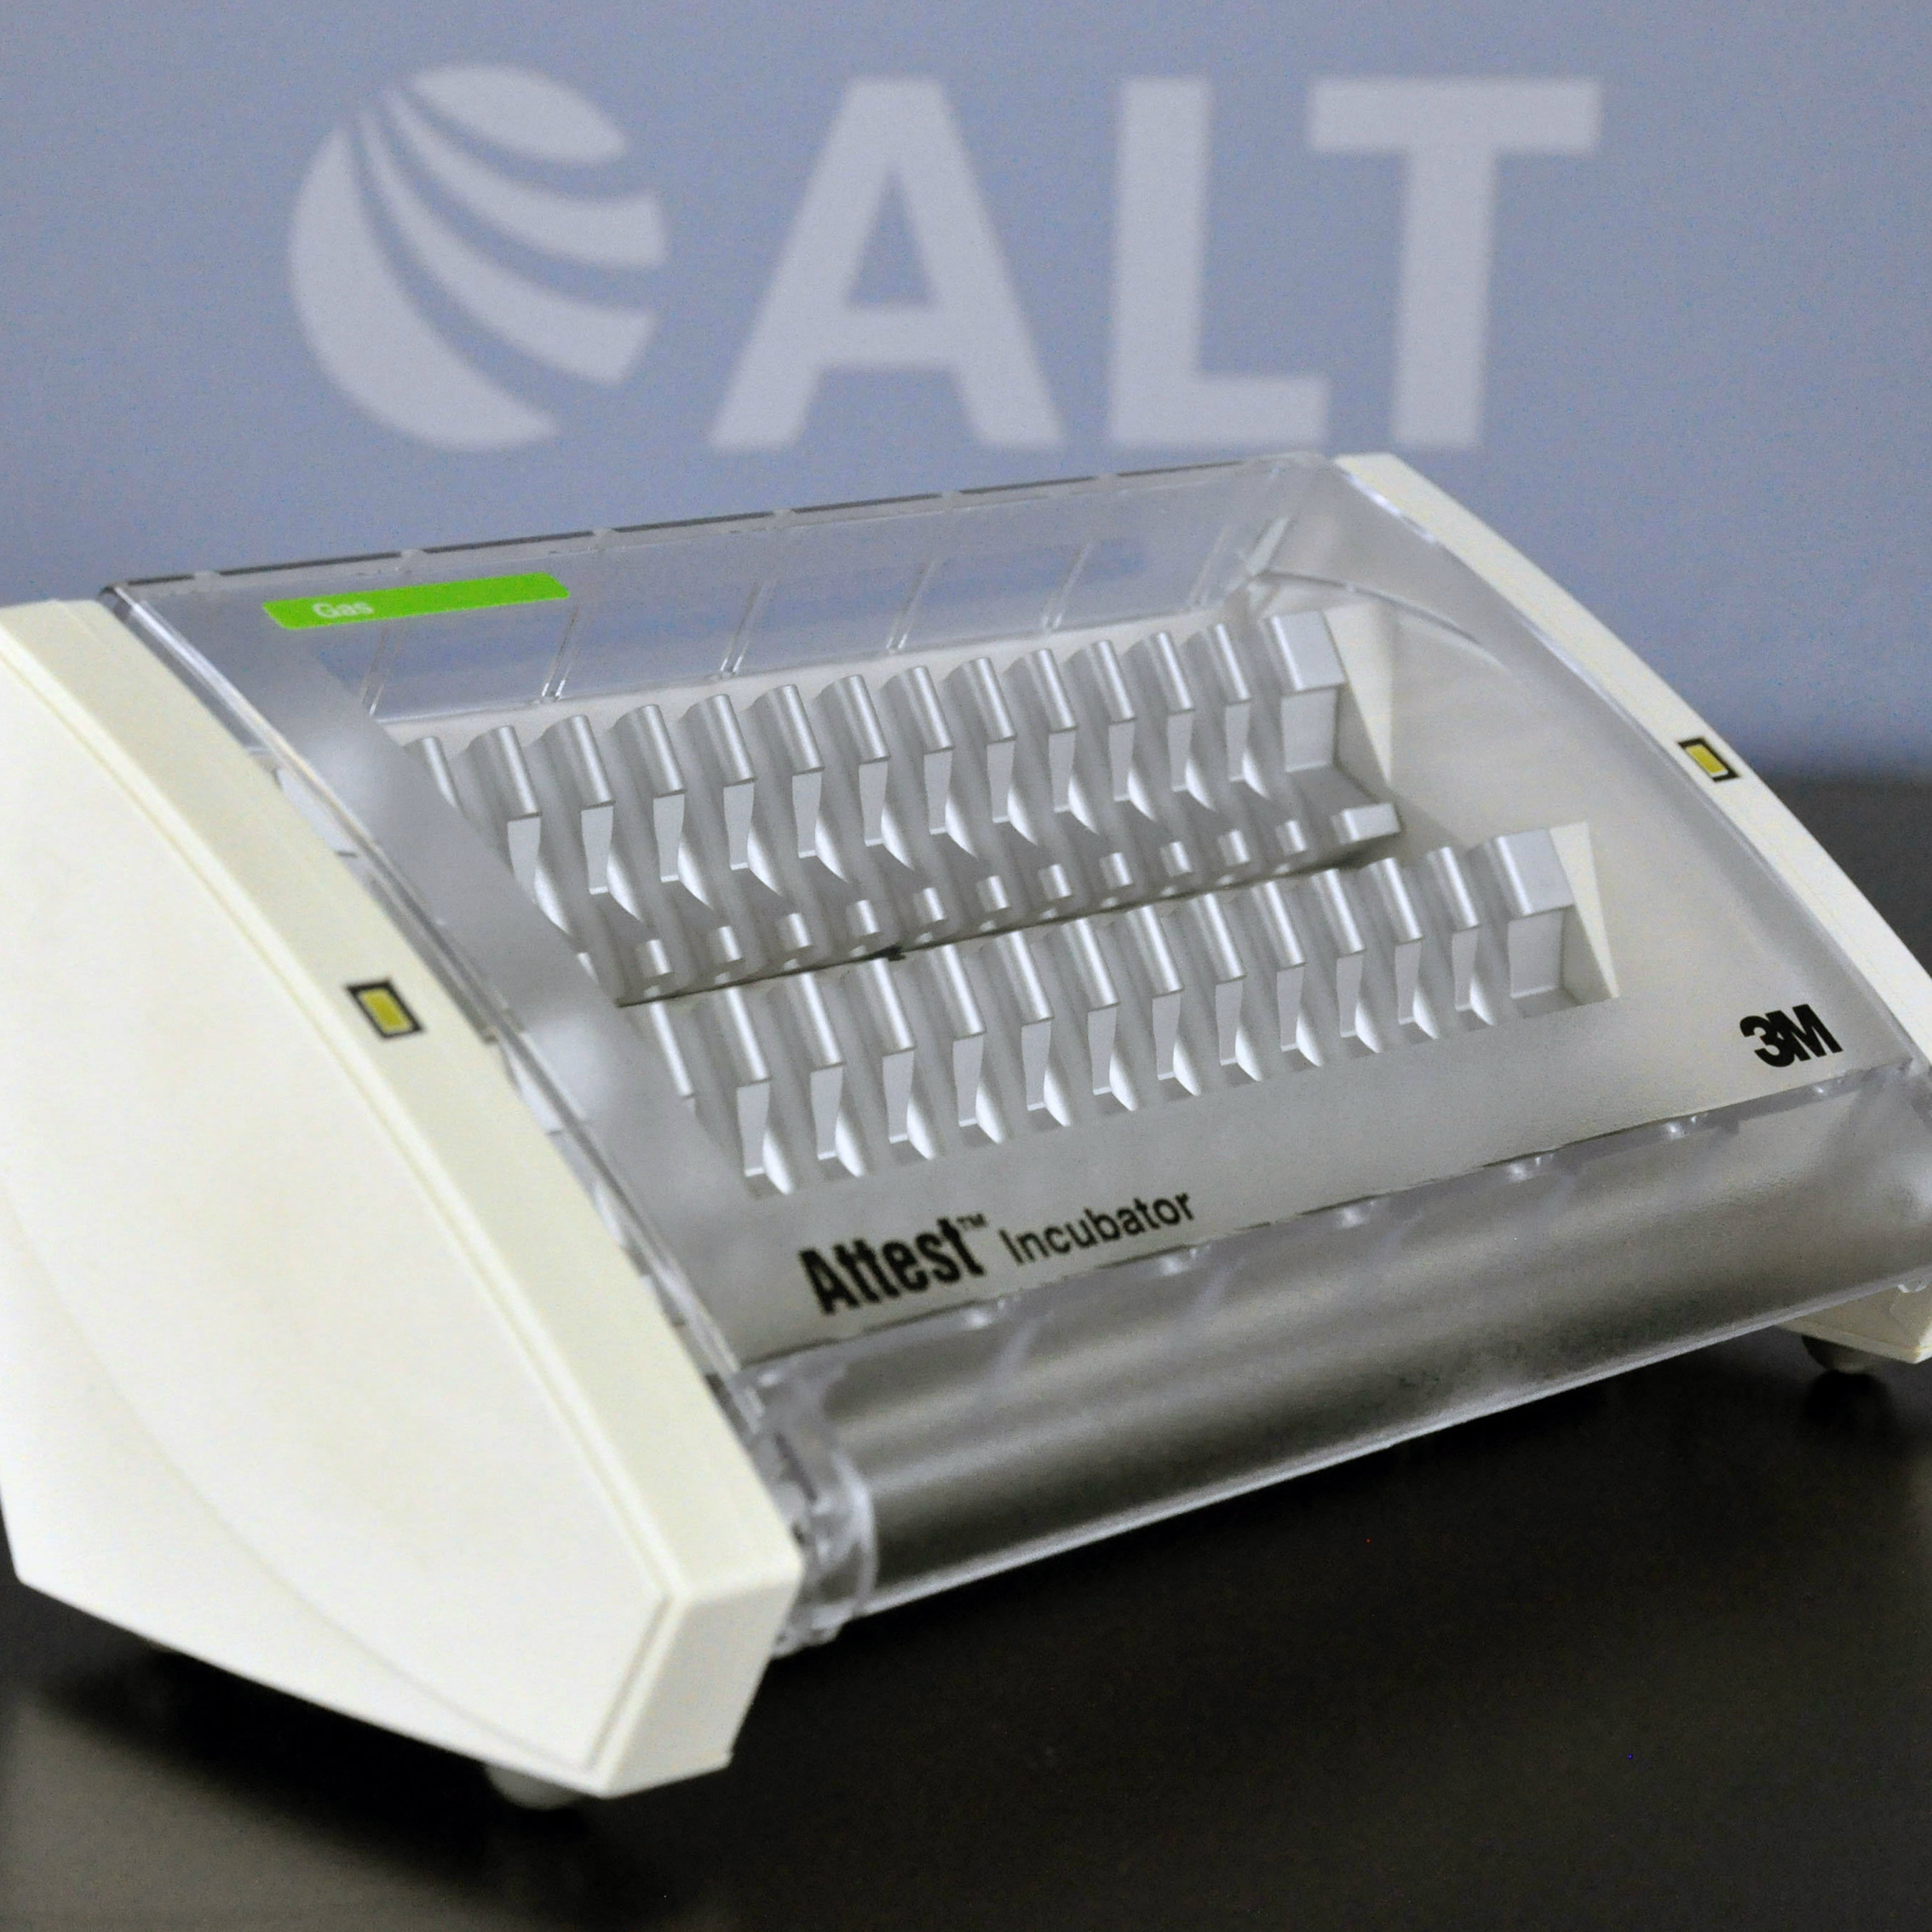 3M 126 Attest Biological Indicator Incubator Image